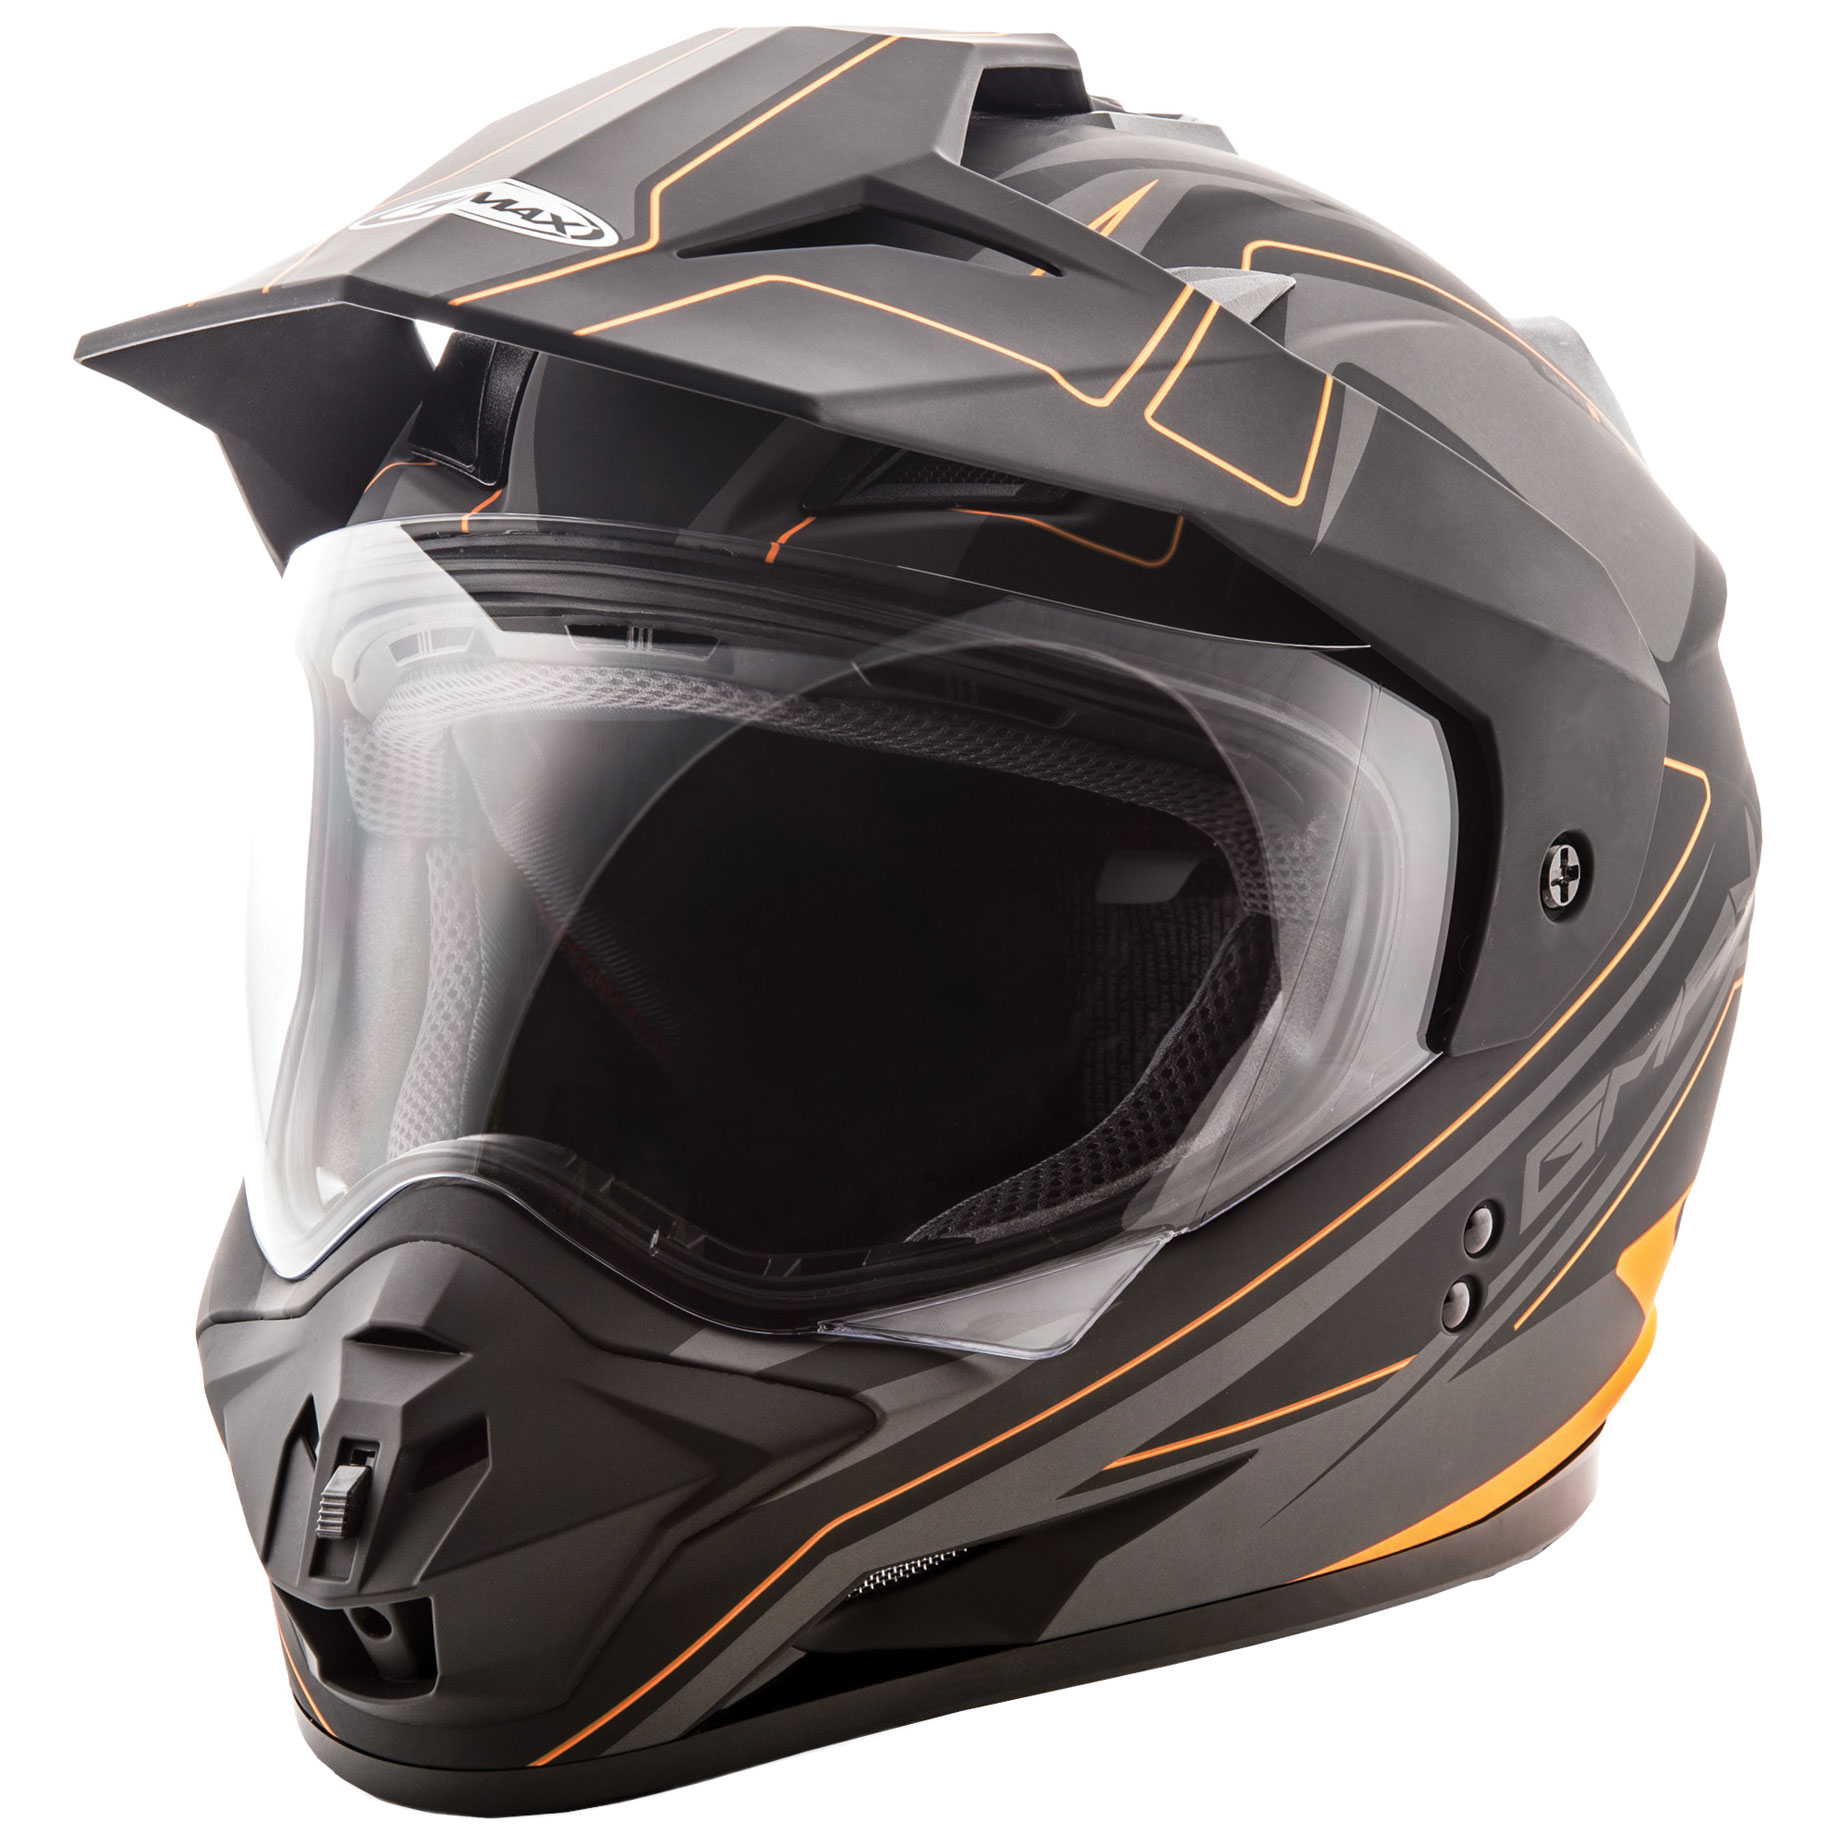 GMAX GM11 Expedition Matte Black/Hi-Viz Orange Dual Sport Helmet